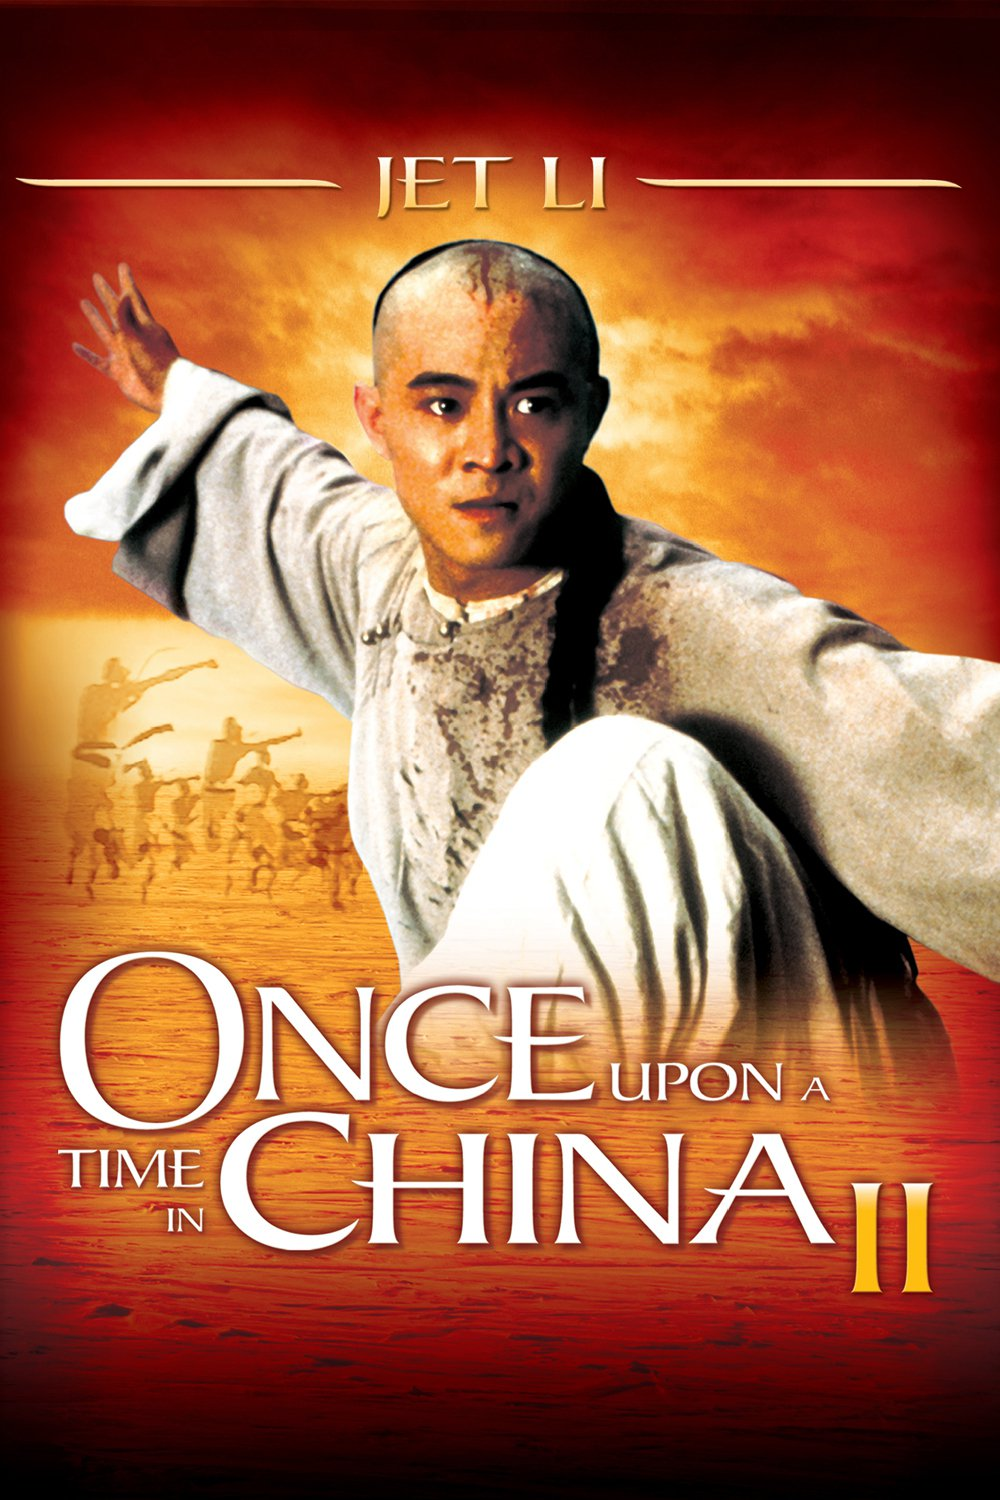 once upon a time in china 2 full movie in hindi